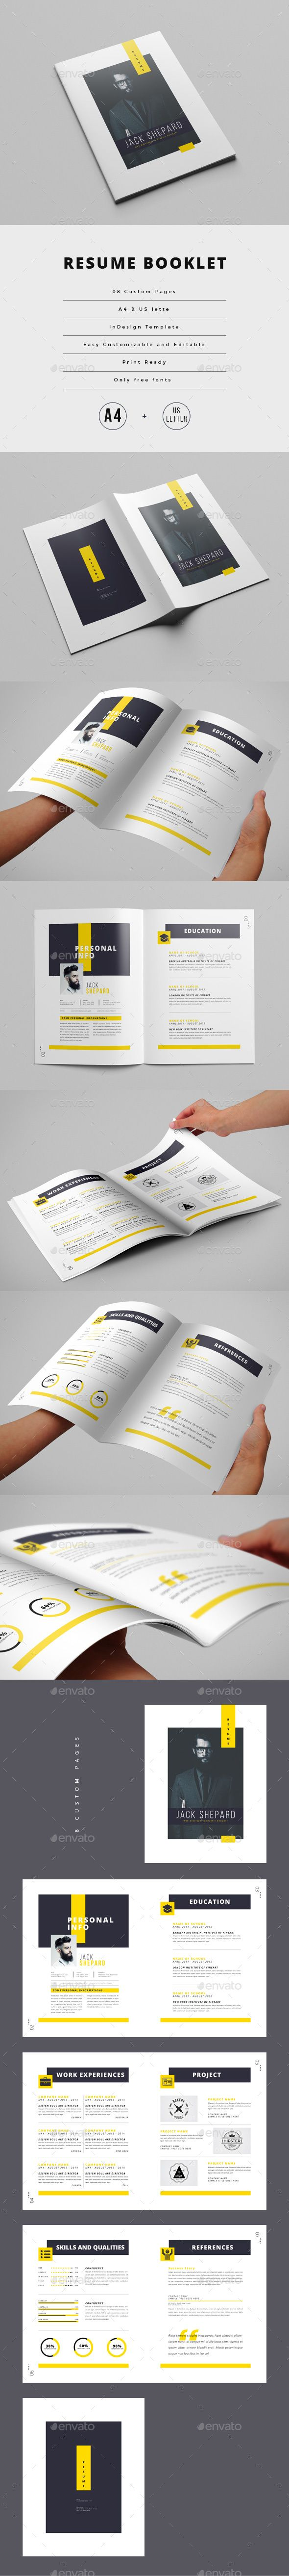 Resume Booklet (8 pages)   Template, Indesign templates and Booklet ...